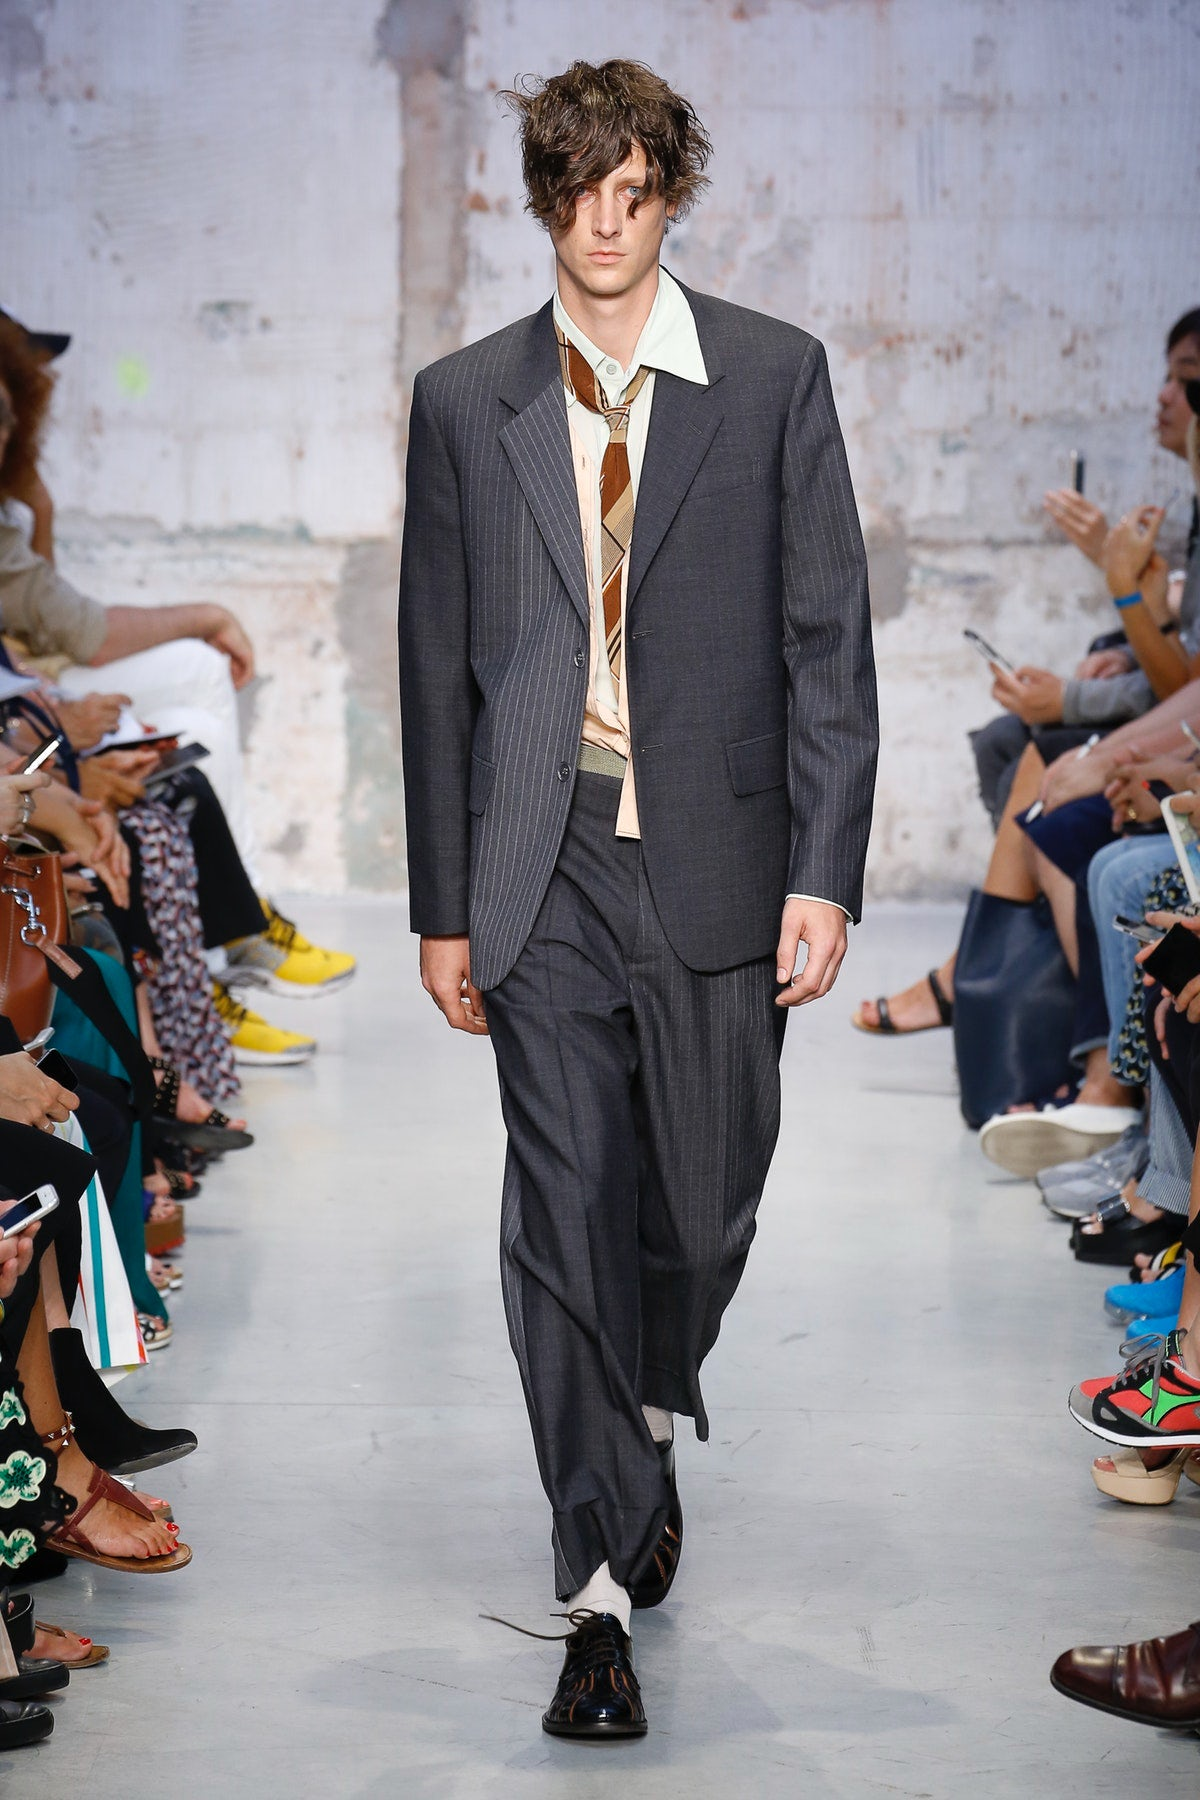 At Marni, An Autobiography of Style